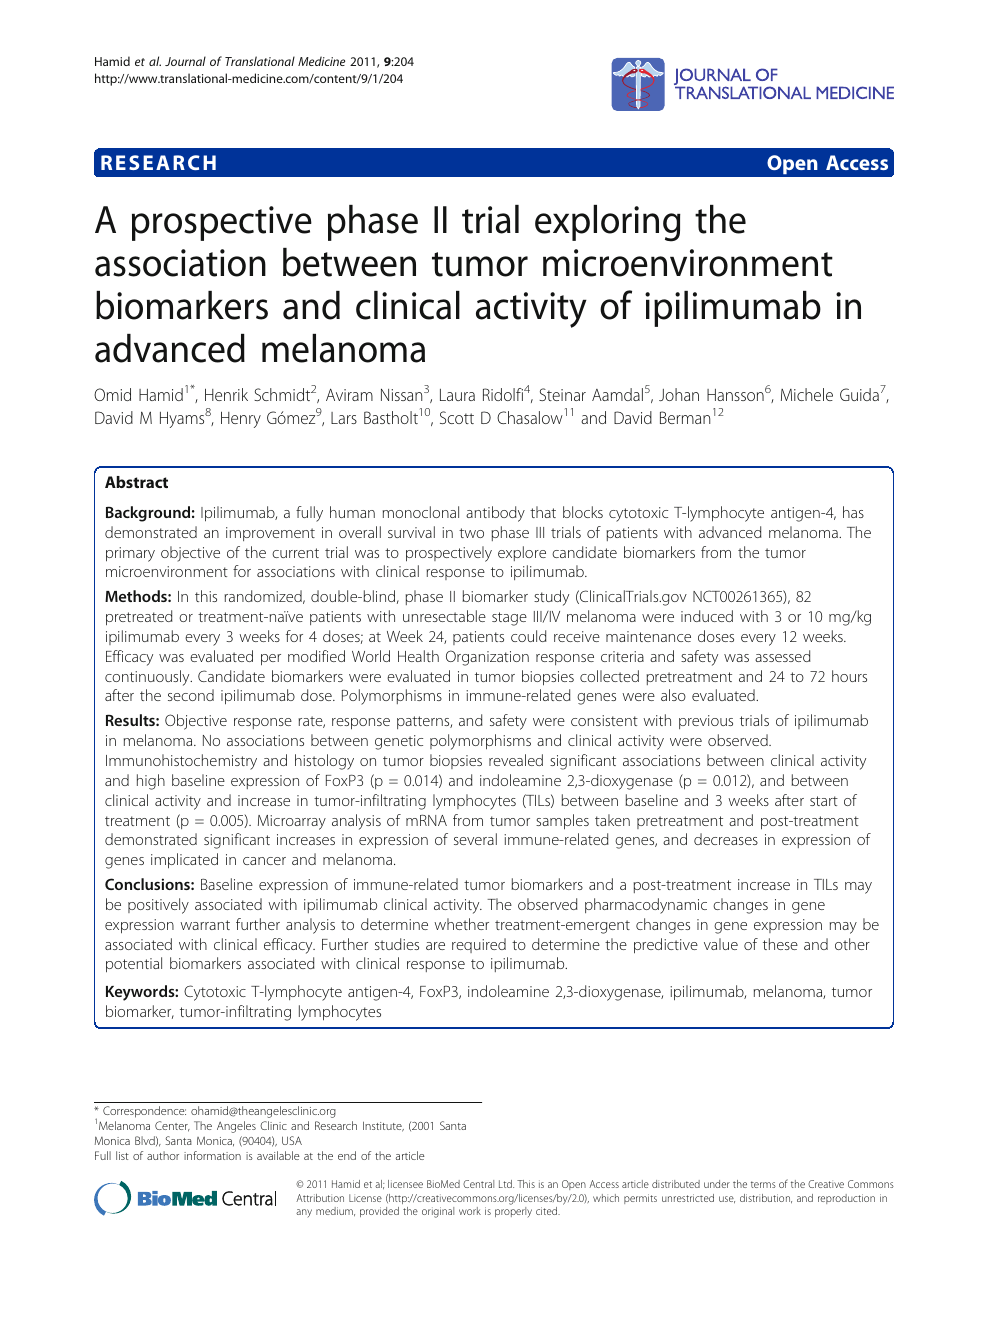 A prospective phase II trial exploring the association